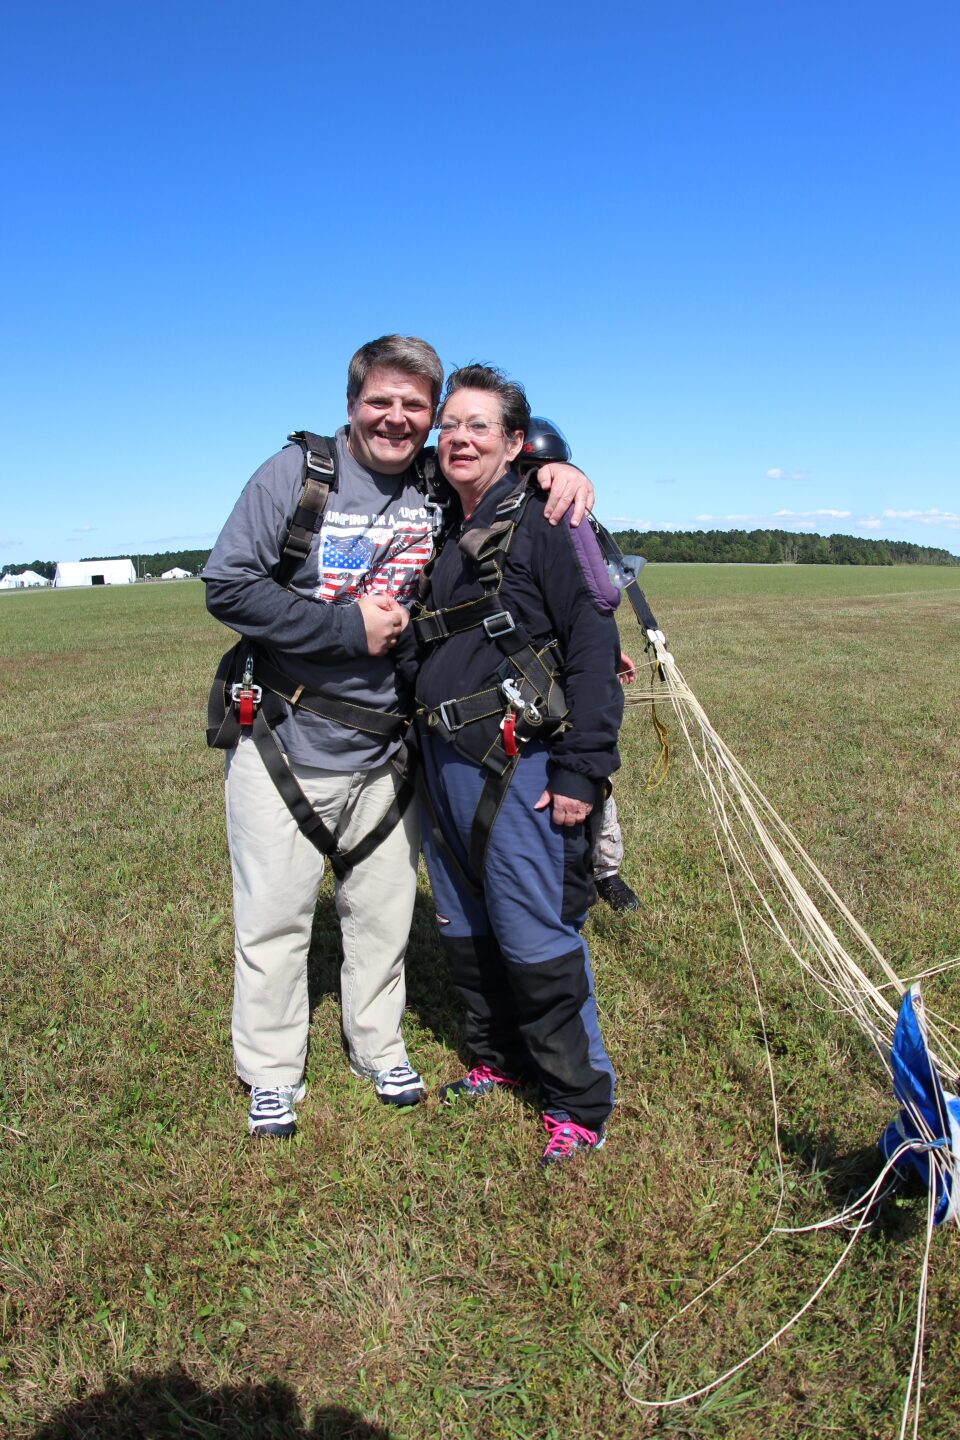 Photos: 'Jumping for a Purpose' skydiving event aims to empower combat woundedveterans